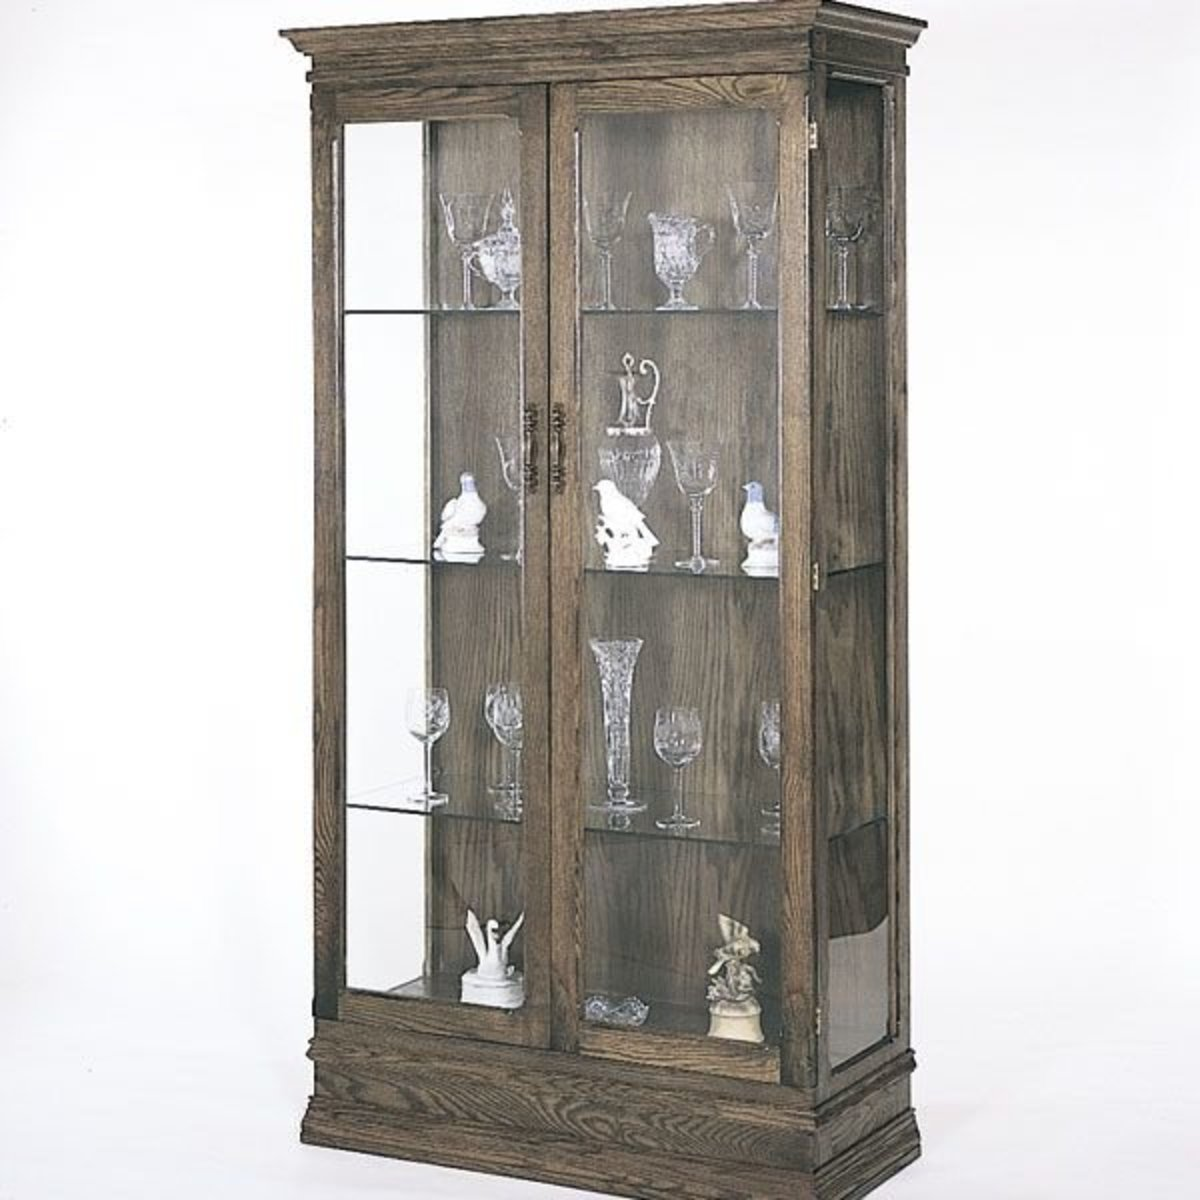 u bild woodworking project paper plan to build curio cabinet rh woodcraft com plans to build a curio cabinet plans to build a curio cabinet